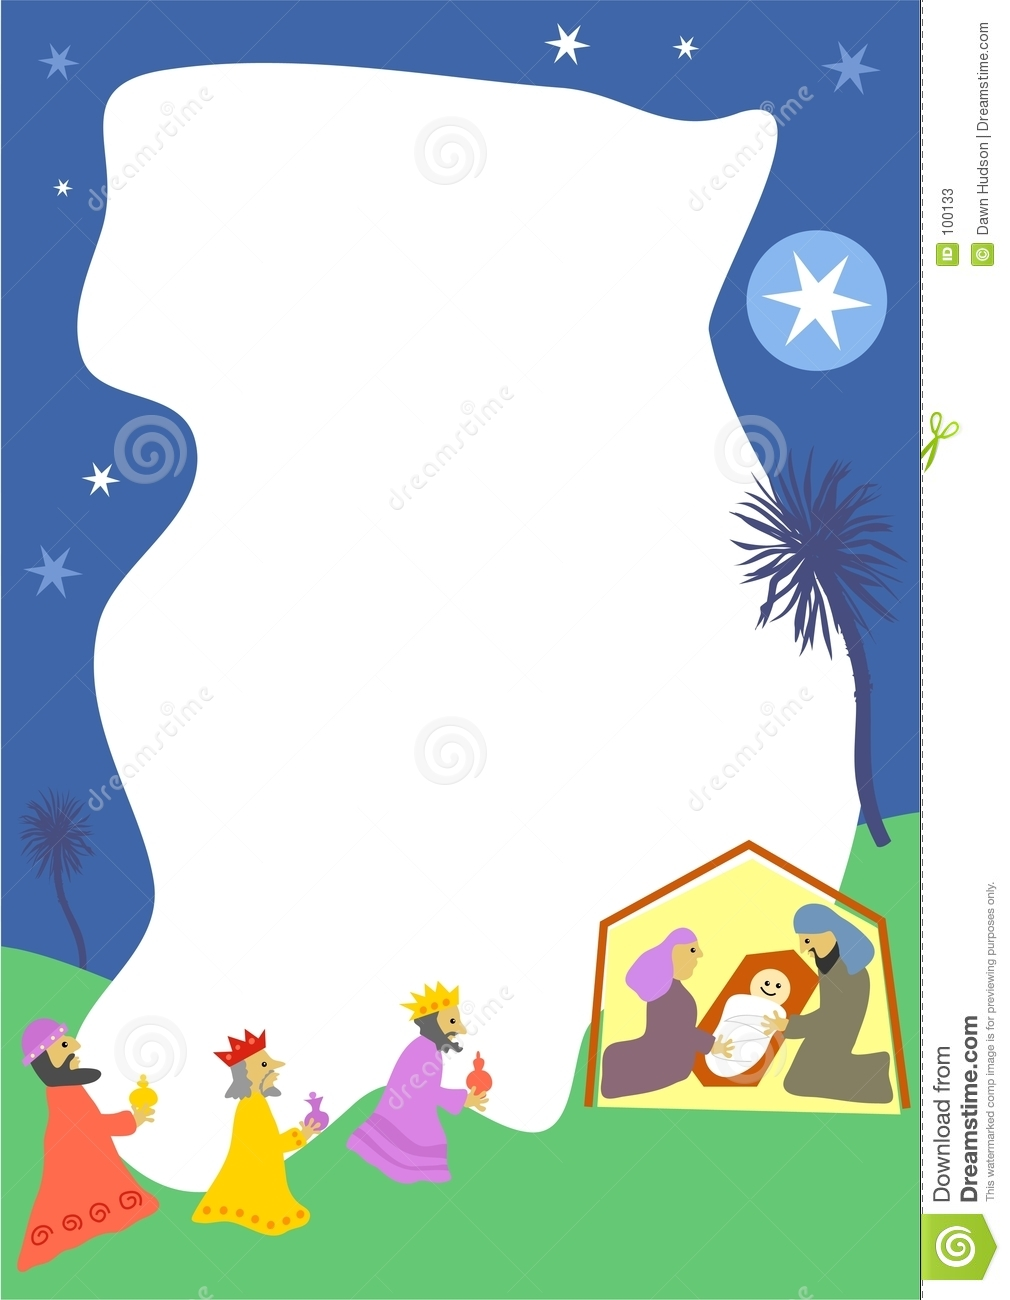 Nativity Images Free Download | New Calendar Template Site